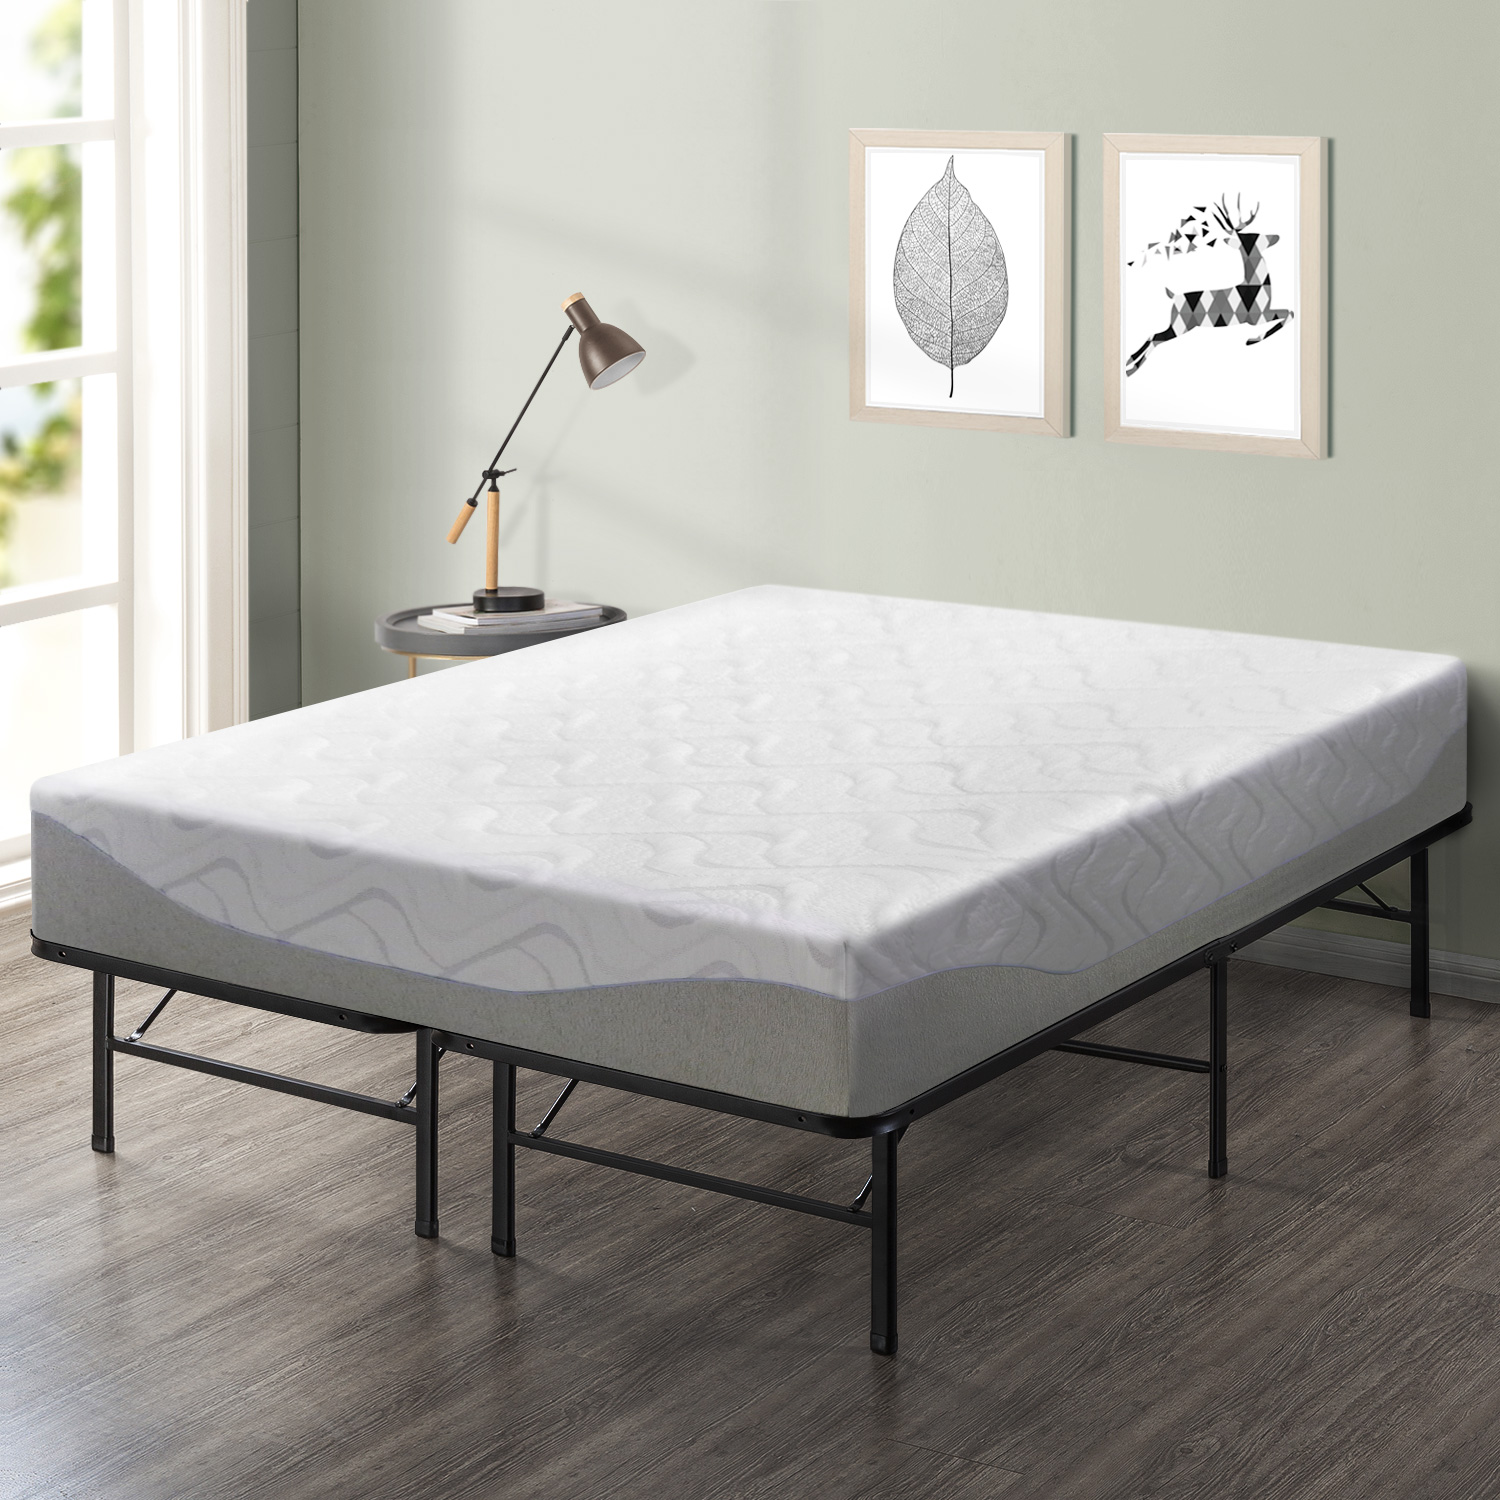 Best Price Mattress 11 Inch Gel-Infused Memory Foam Mattress and 14 Inch Steel Platform Bed Frame Set - Twin